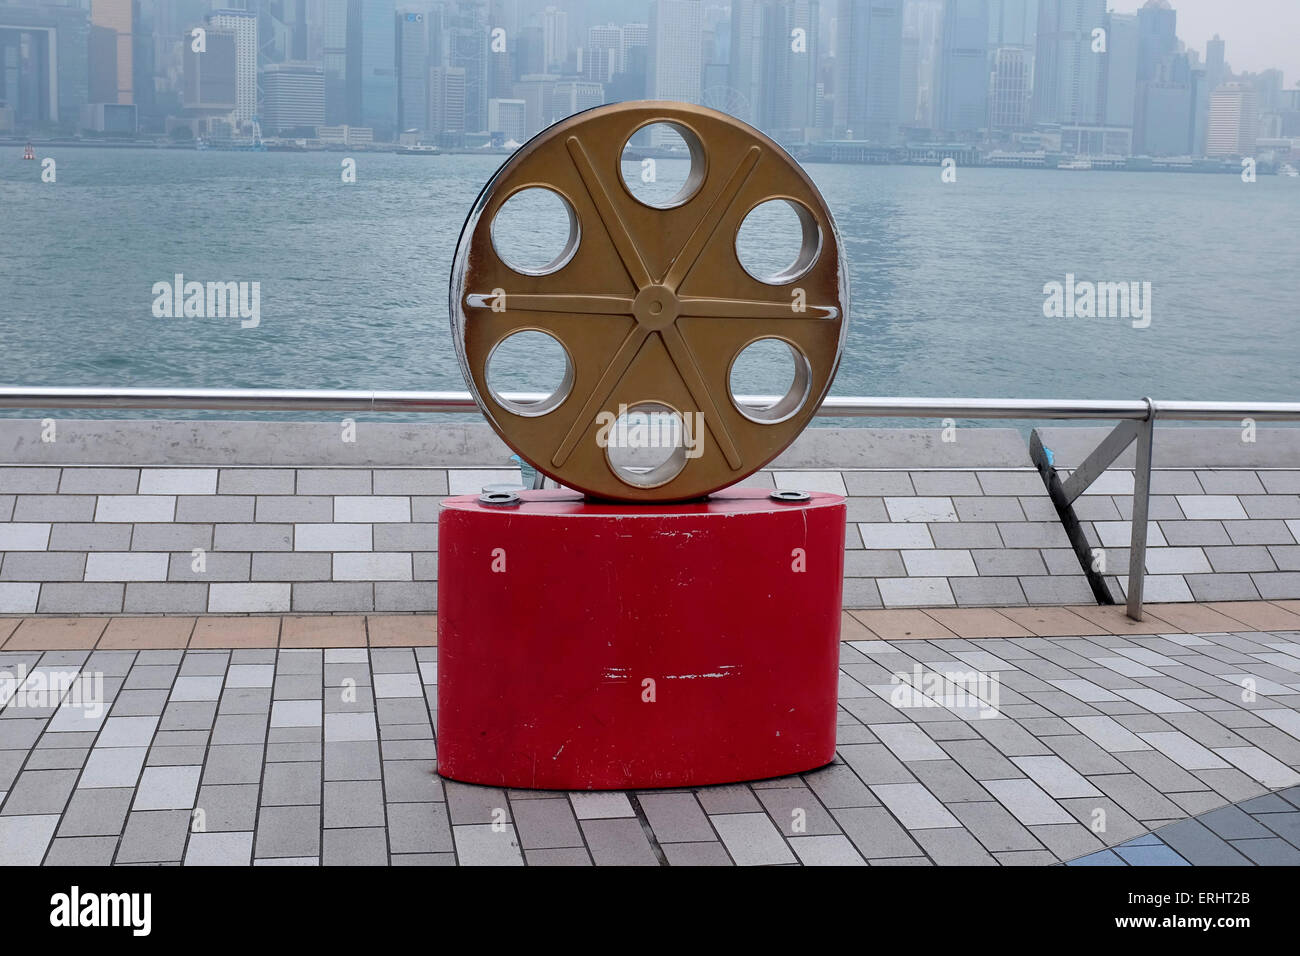 Roll of Movie Film statue on the Avenue of Stars, Hong Kong SAR, China - Stock Image